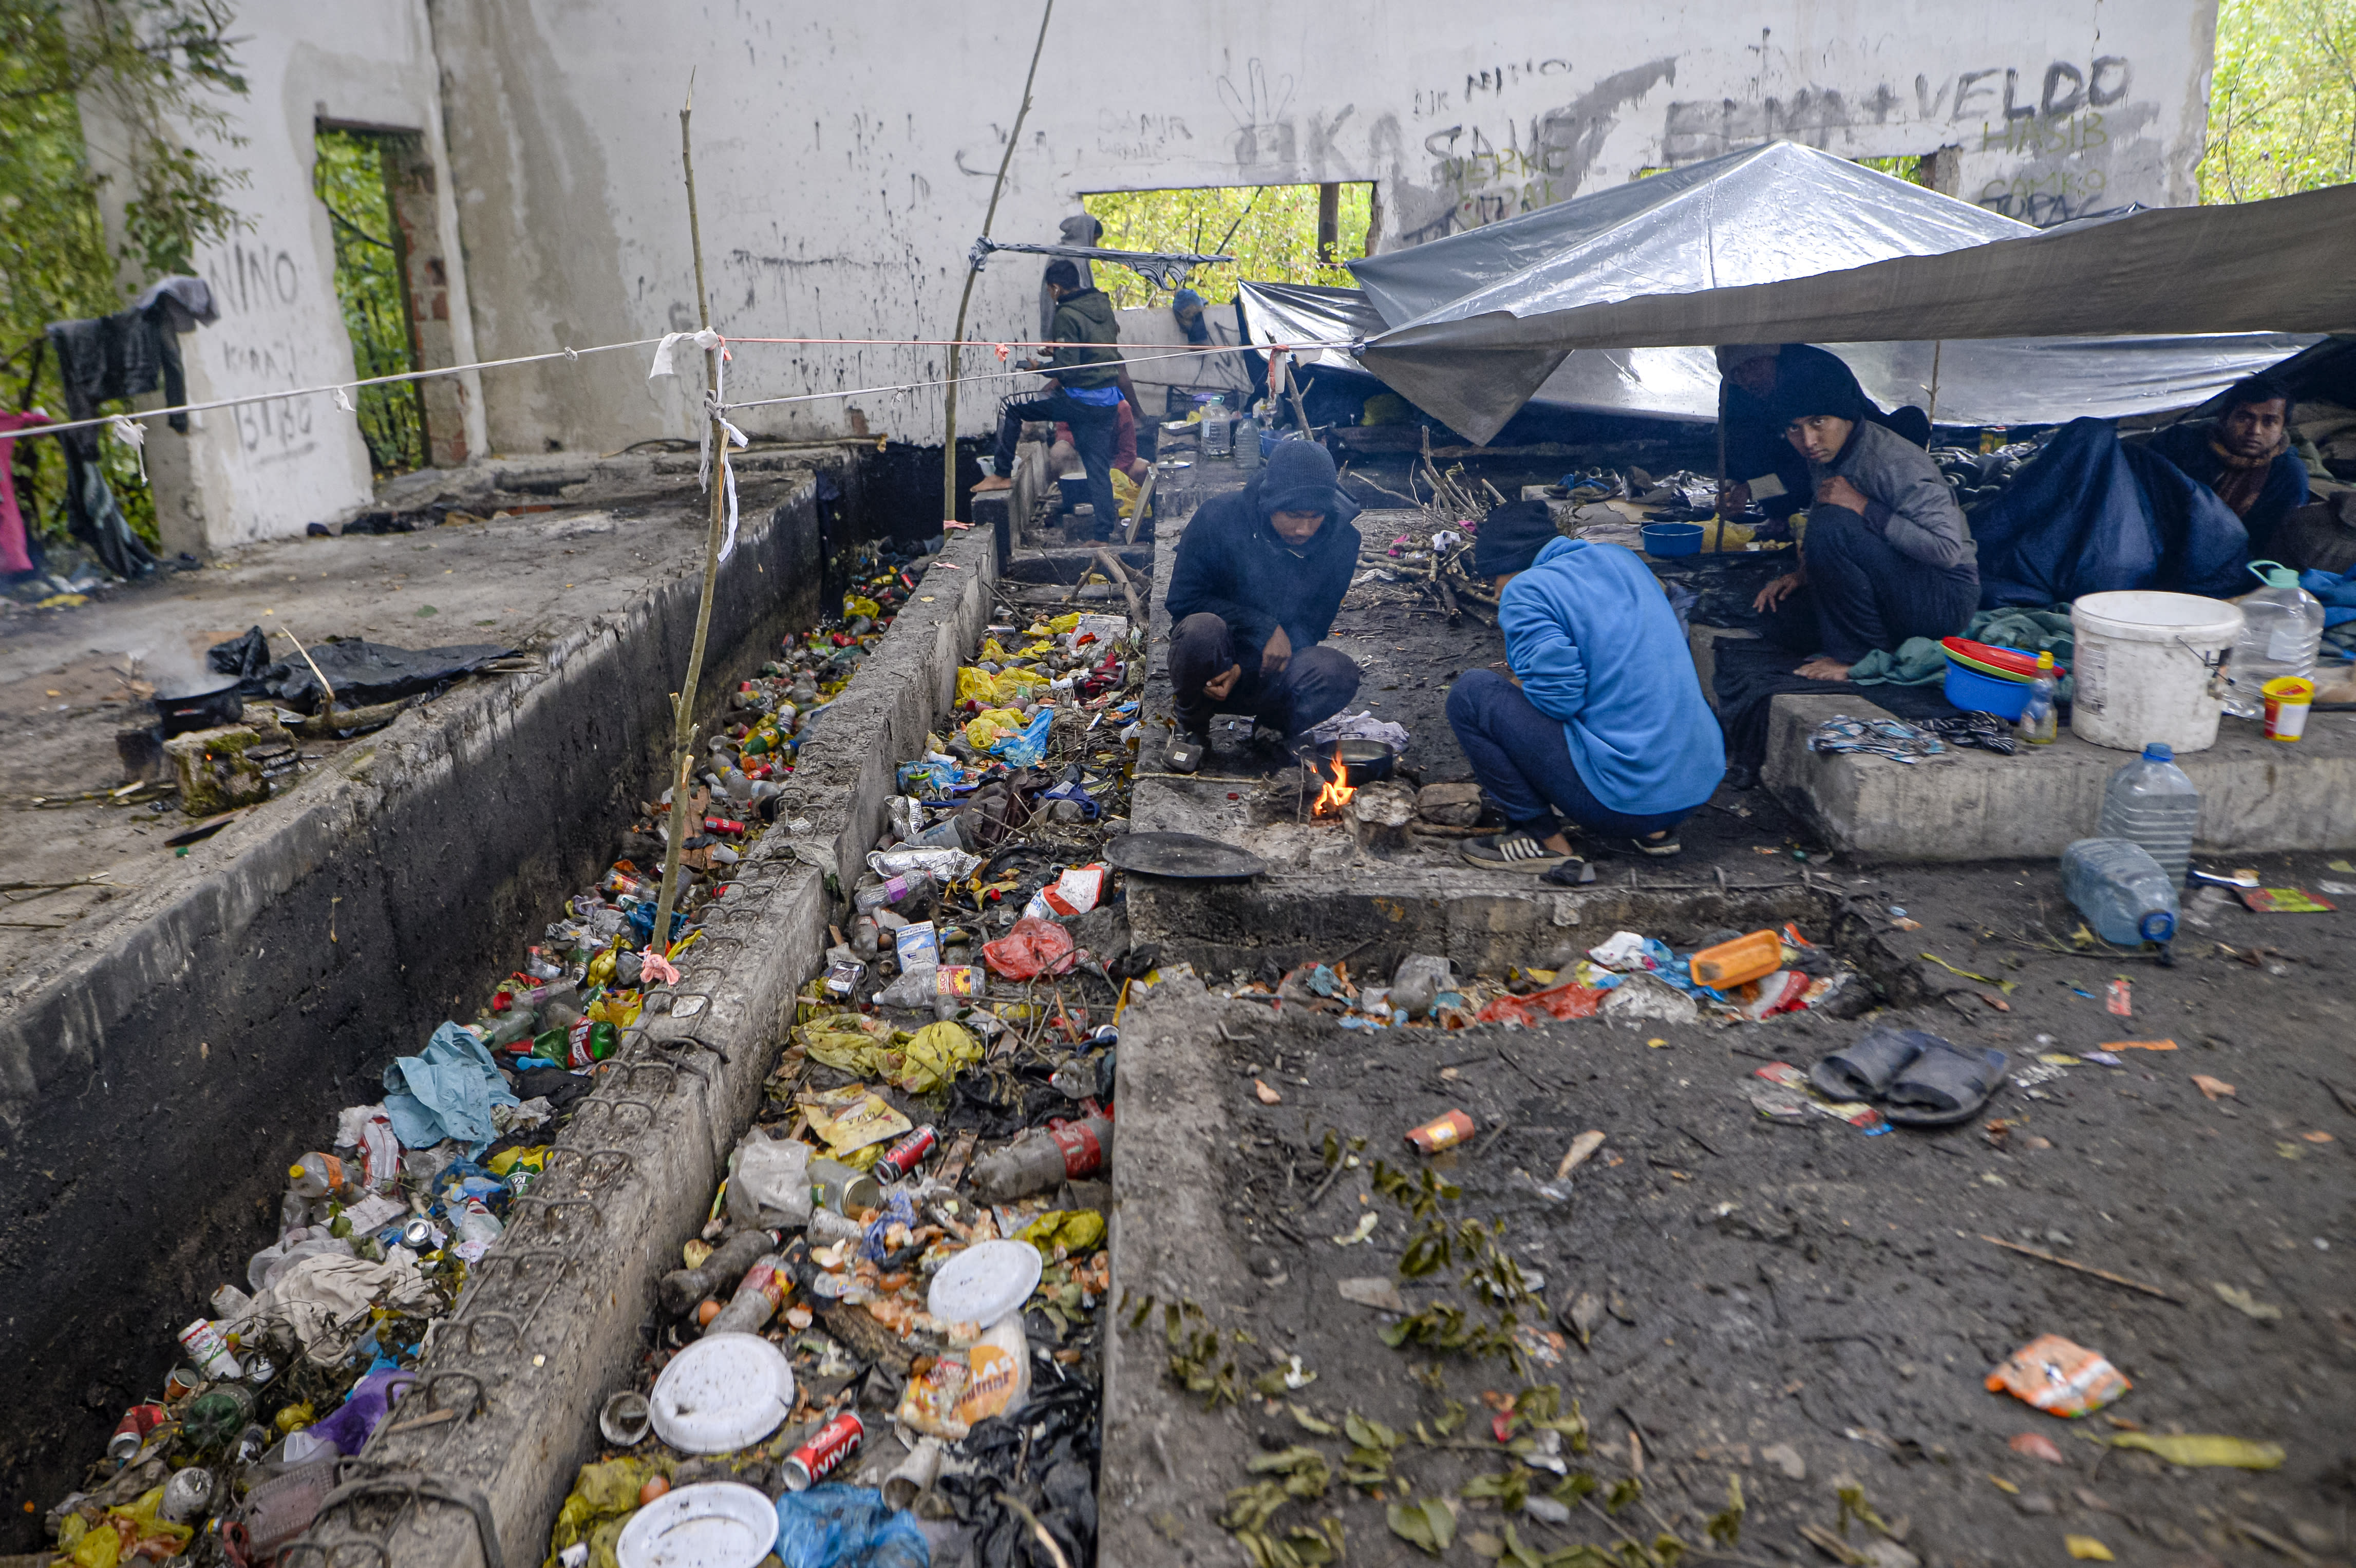 Migrants cook on an open fire in an abandoned factory outside Velika Kladusa, Bosnia, Saturday, Sept. 26, 2020. Remote woods, abandoned run-down buildings and roadsides on the fringes of northwestern Bosnian towns are steadily filling with makeshift camps where migrants from the Middle East, Asia and North Africa are bracing for more misery as autumn's chill and rains set it. (AP Photo/Kemal Softic)